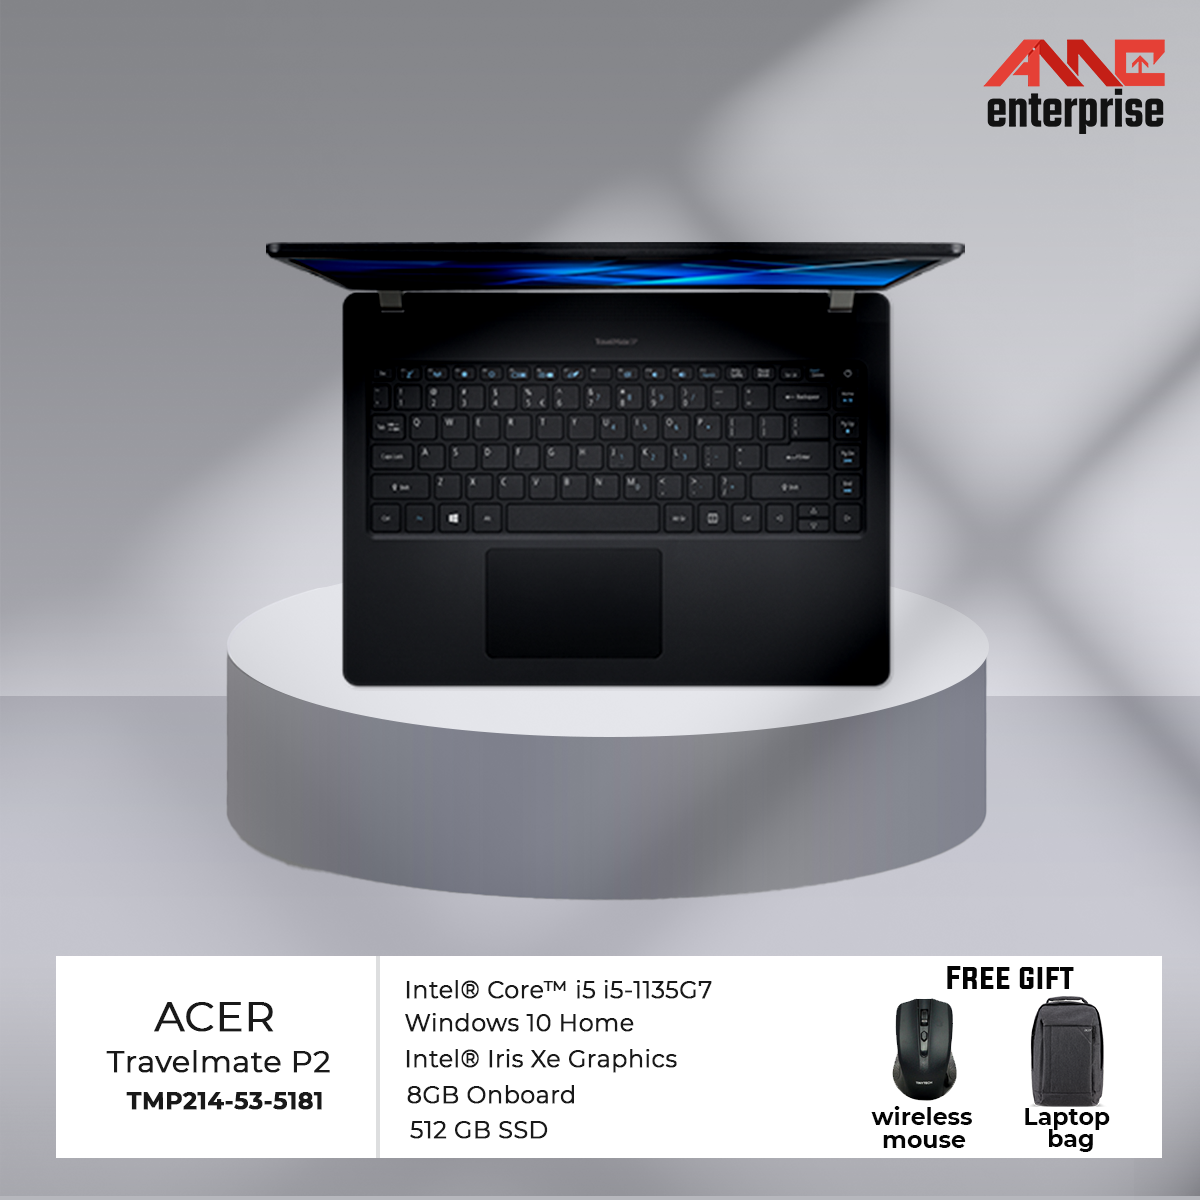 ACER Travelmate P2 TMP214-53-5181 (4).png